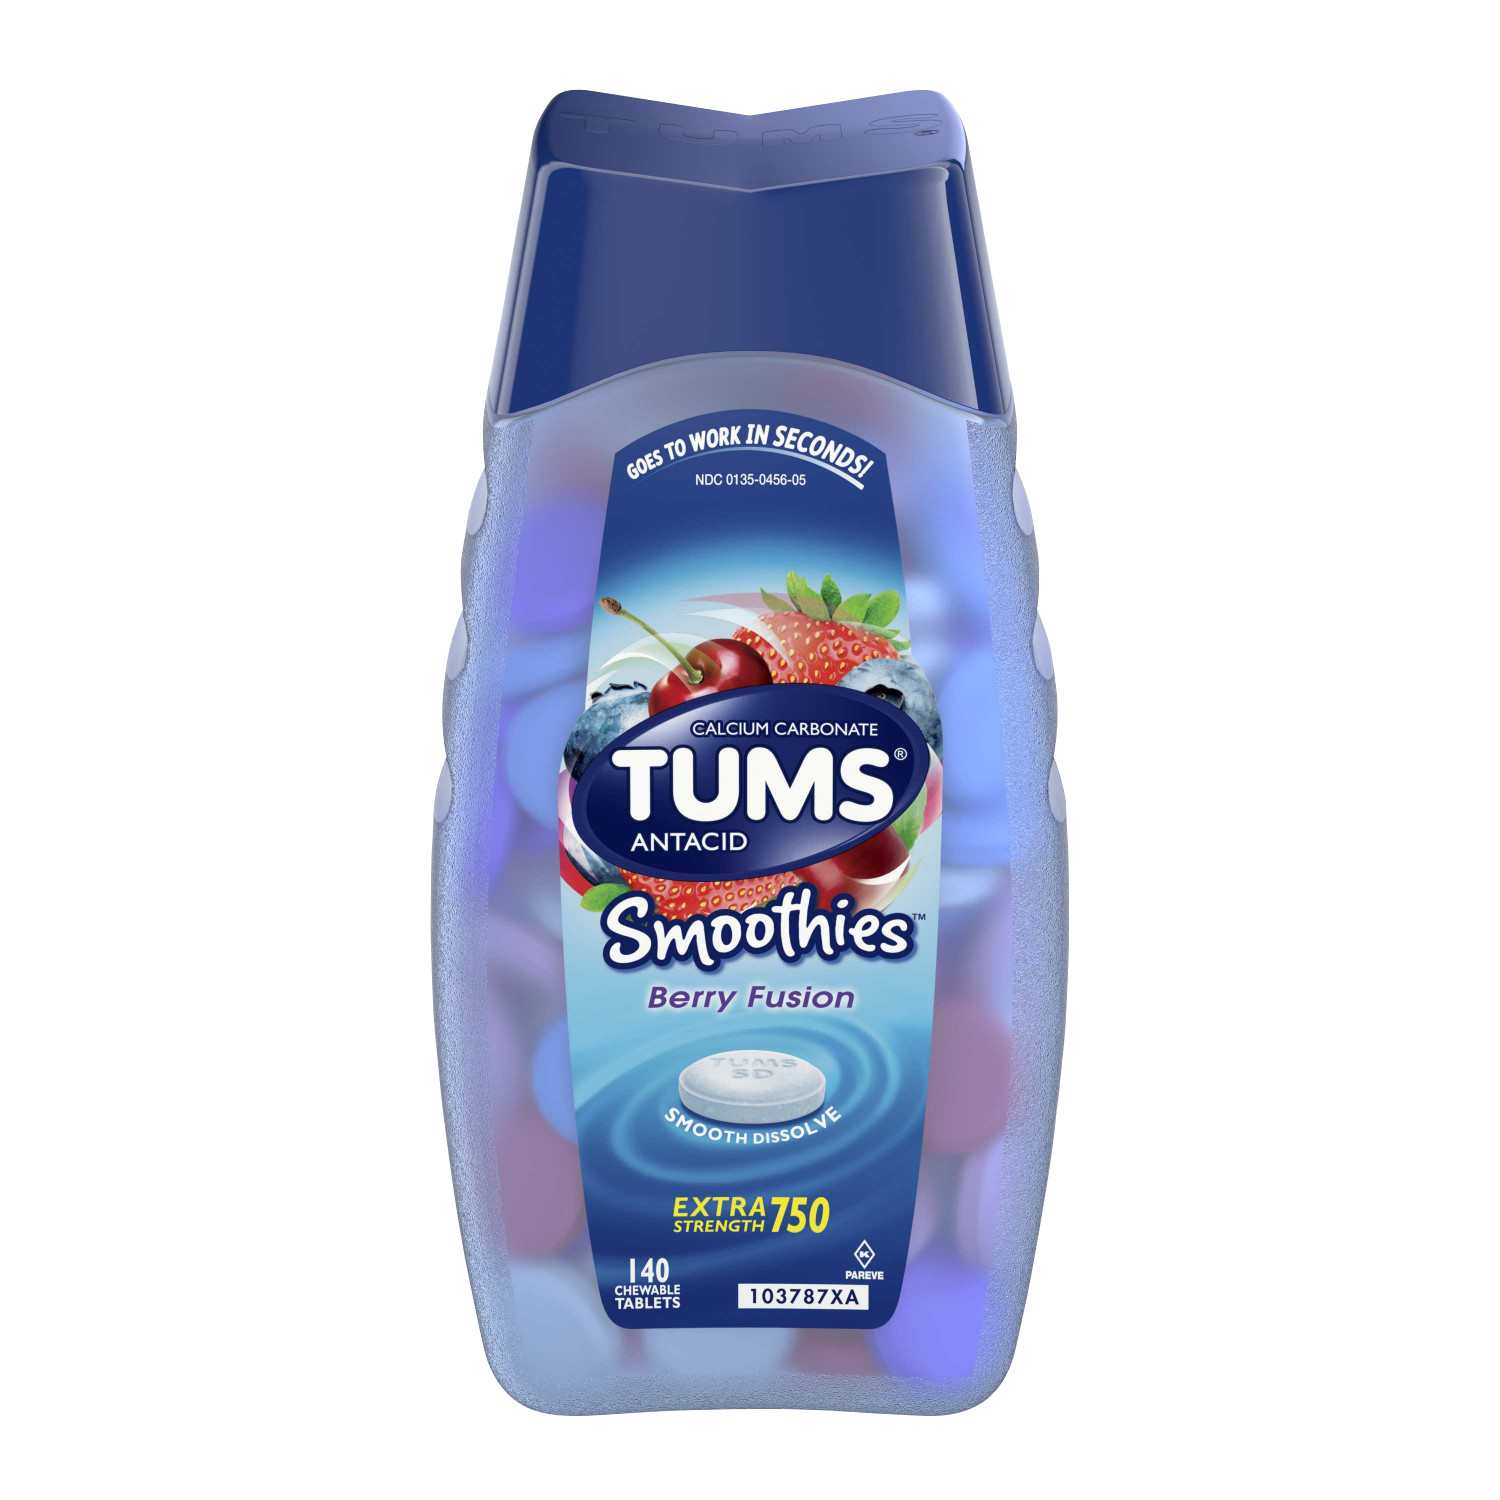 TUMS Antacid Chewable Tablets, Smoothies Berry Fusion Extra Strength for Heartburn Relief, 140 count